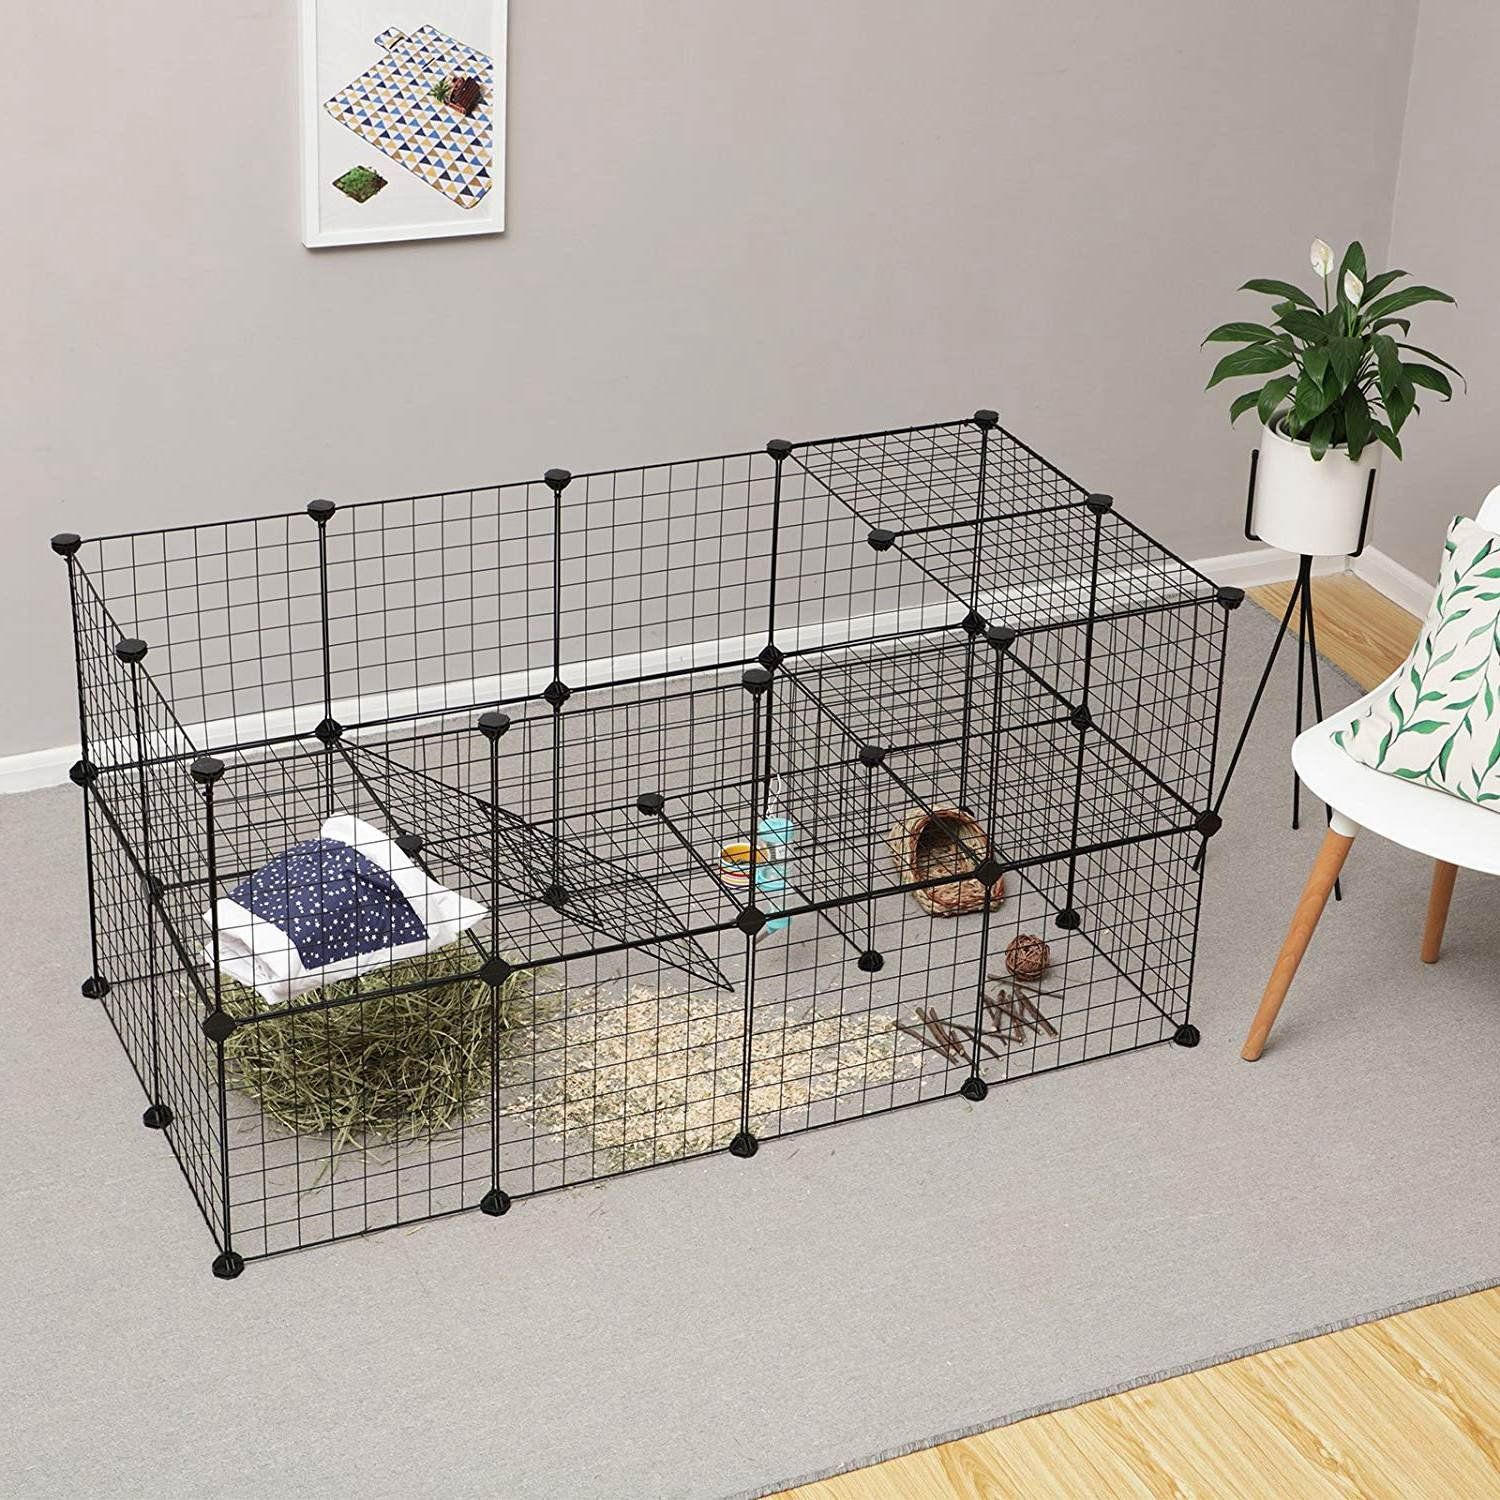 JYYG Small Pet Pen Bunny Cage Dogs Playpen Indoor Out Door Animal Fence Puppy Guinea Pigs, Dwarf Rabbits PET-F (36 Panels, Black) by JYYG (Image #5)